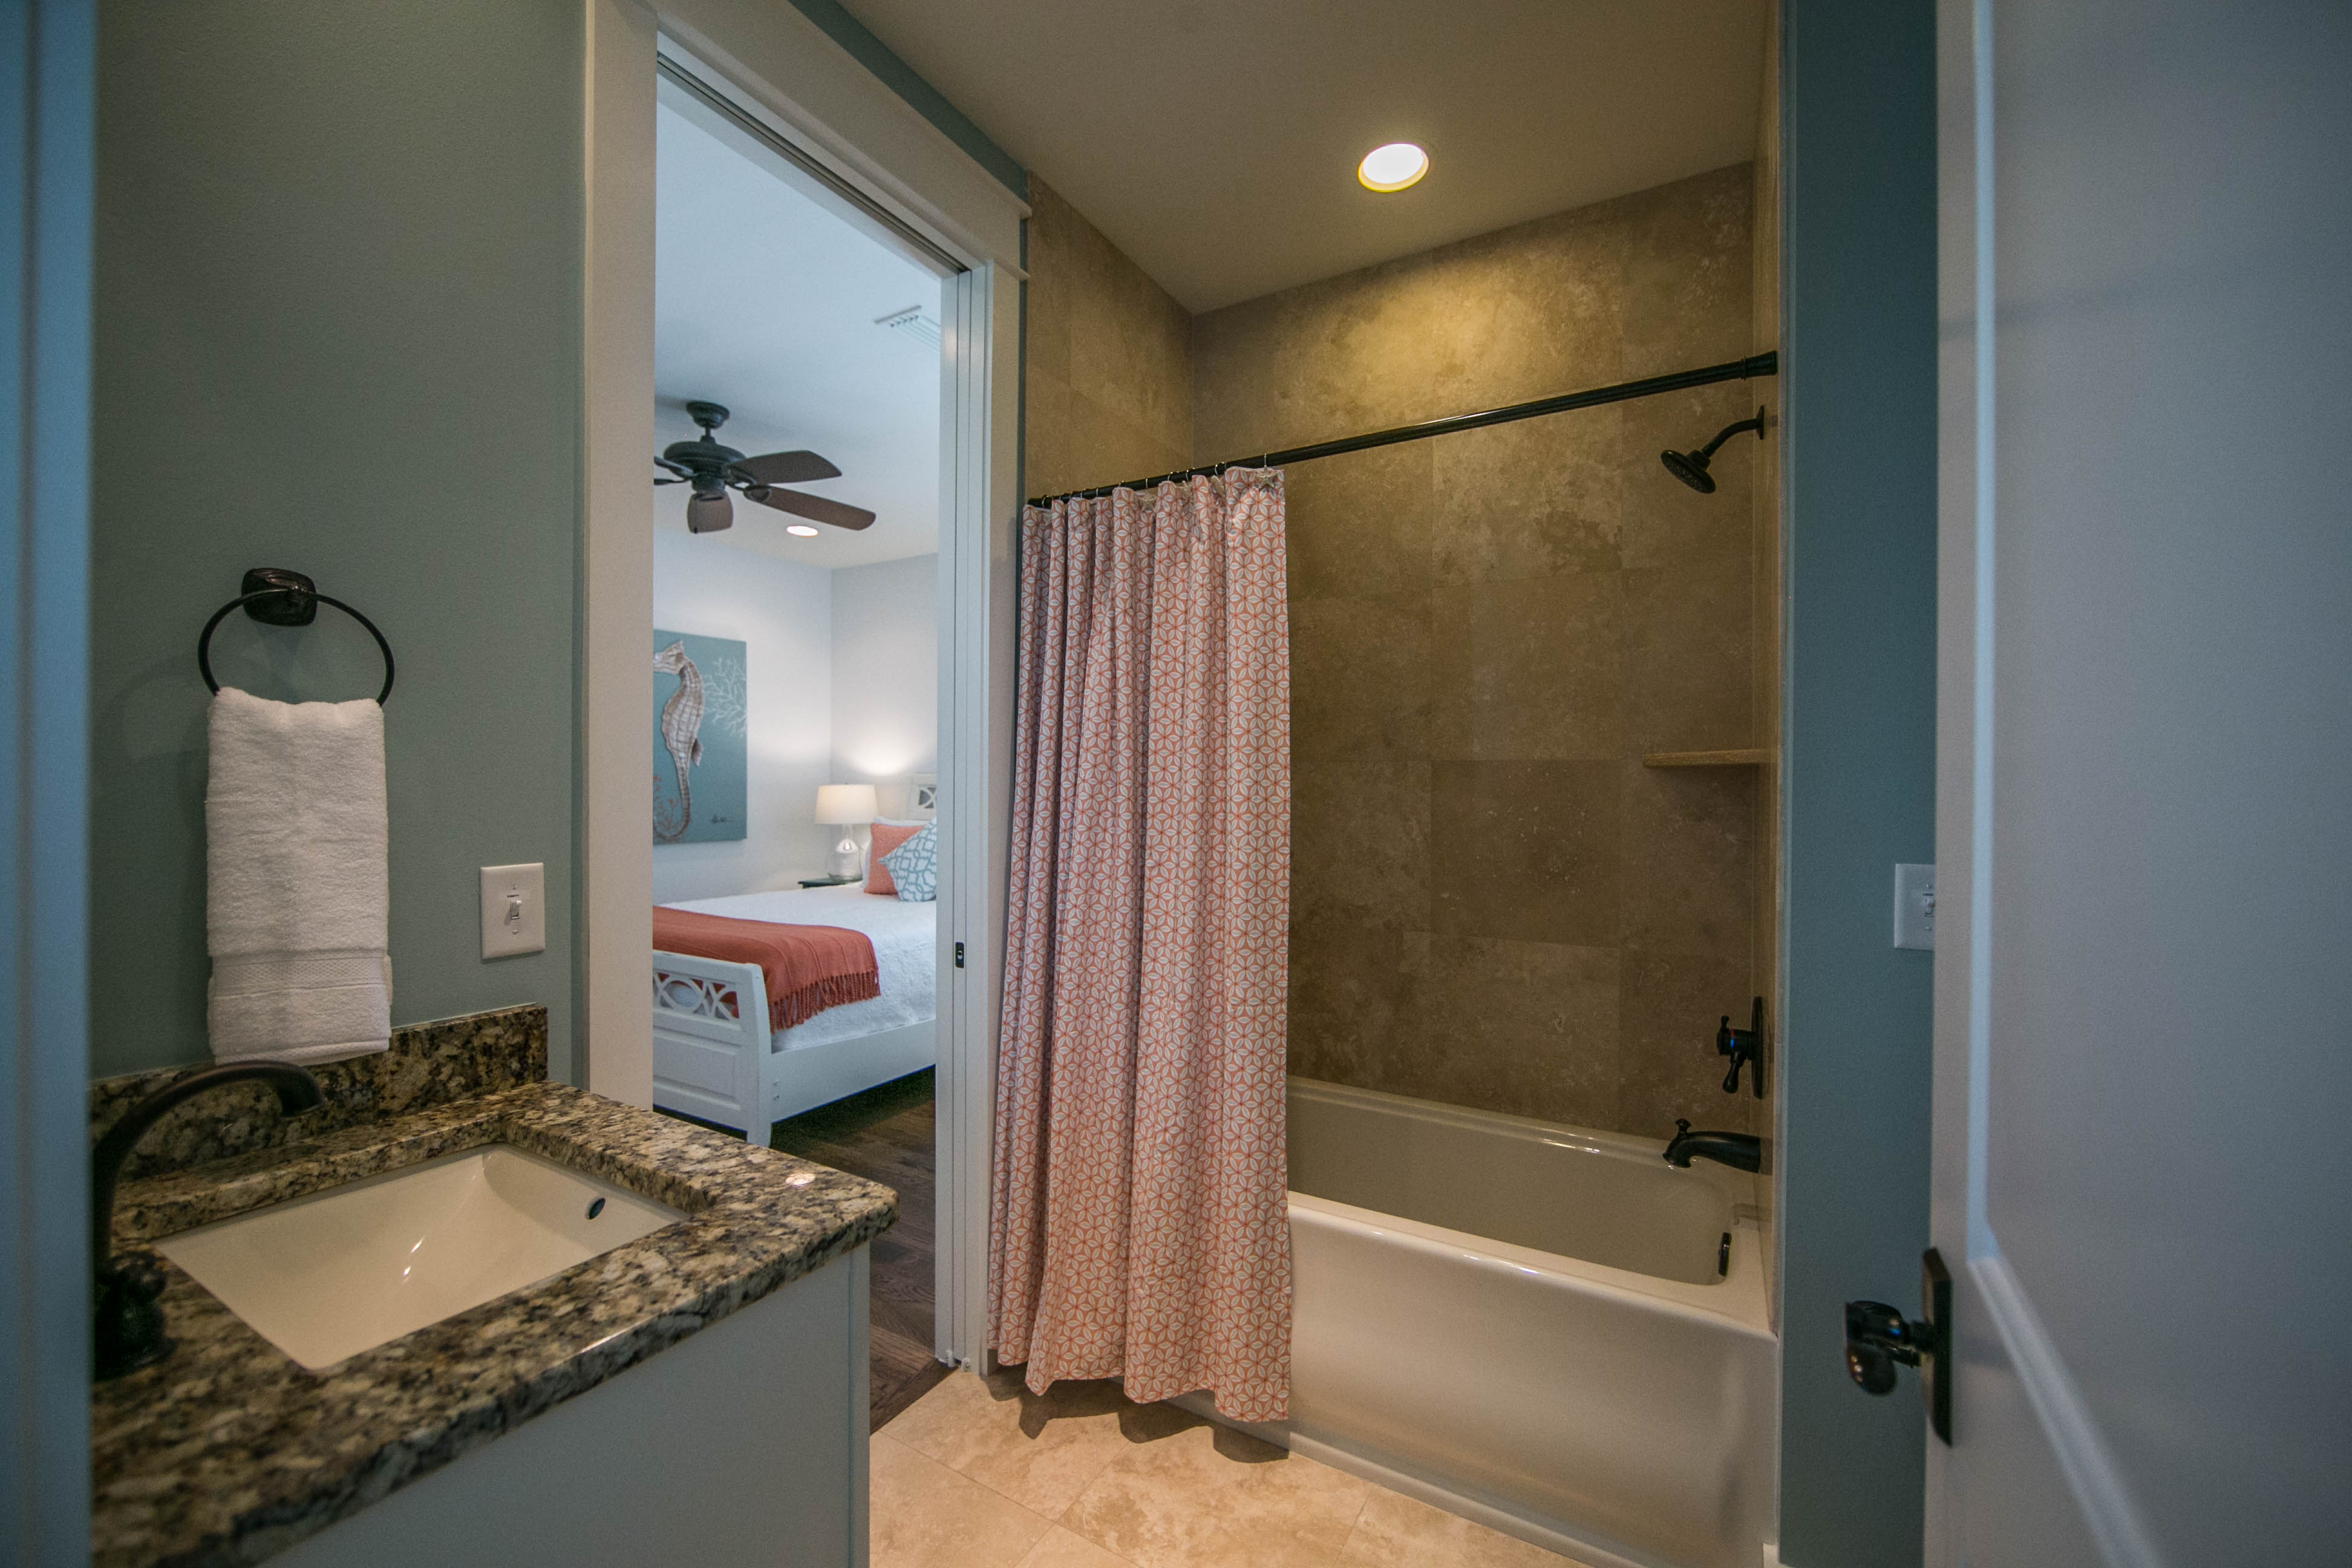 Shared bathroom with tub 2nd floor for Queen bedroom, bunk room in upstairs hallwall